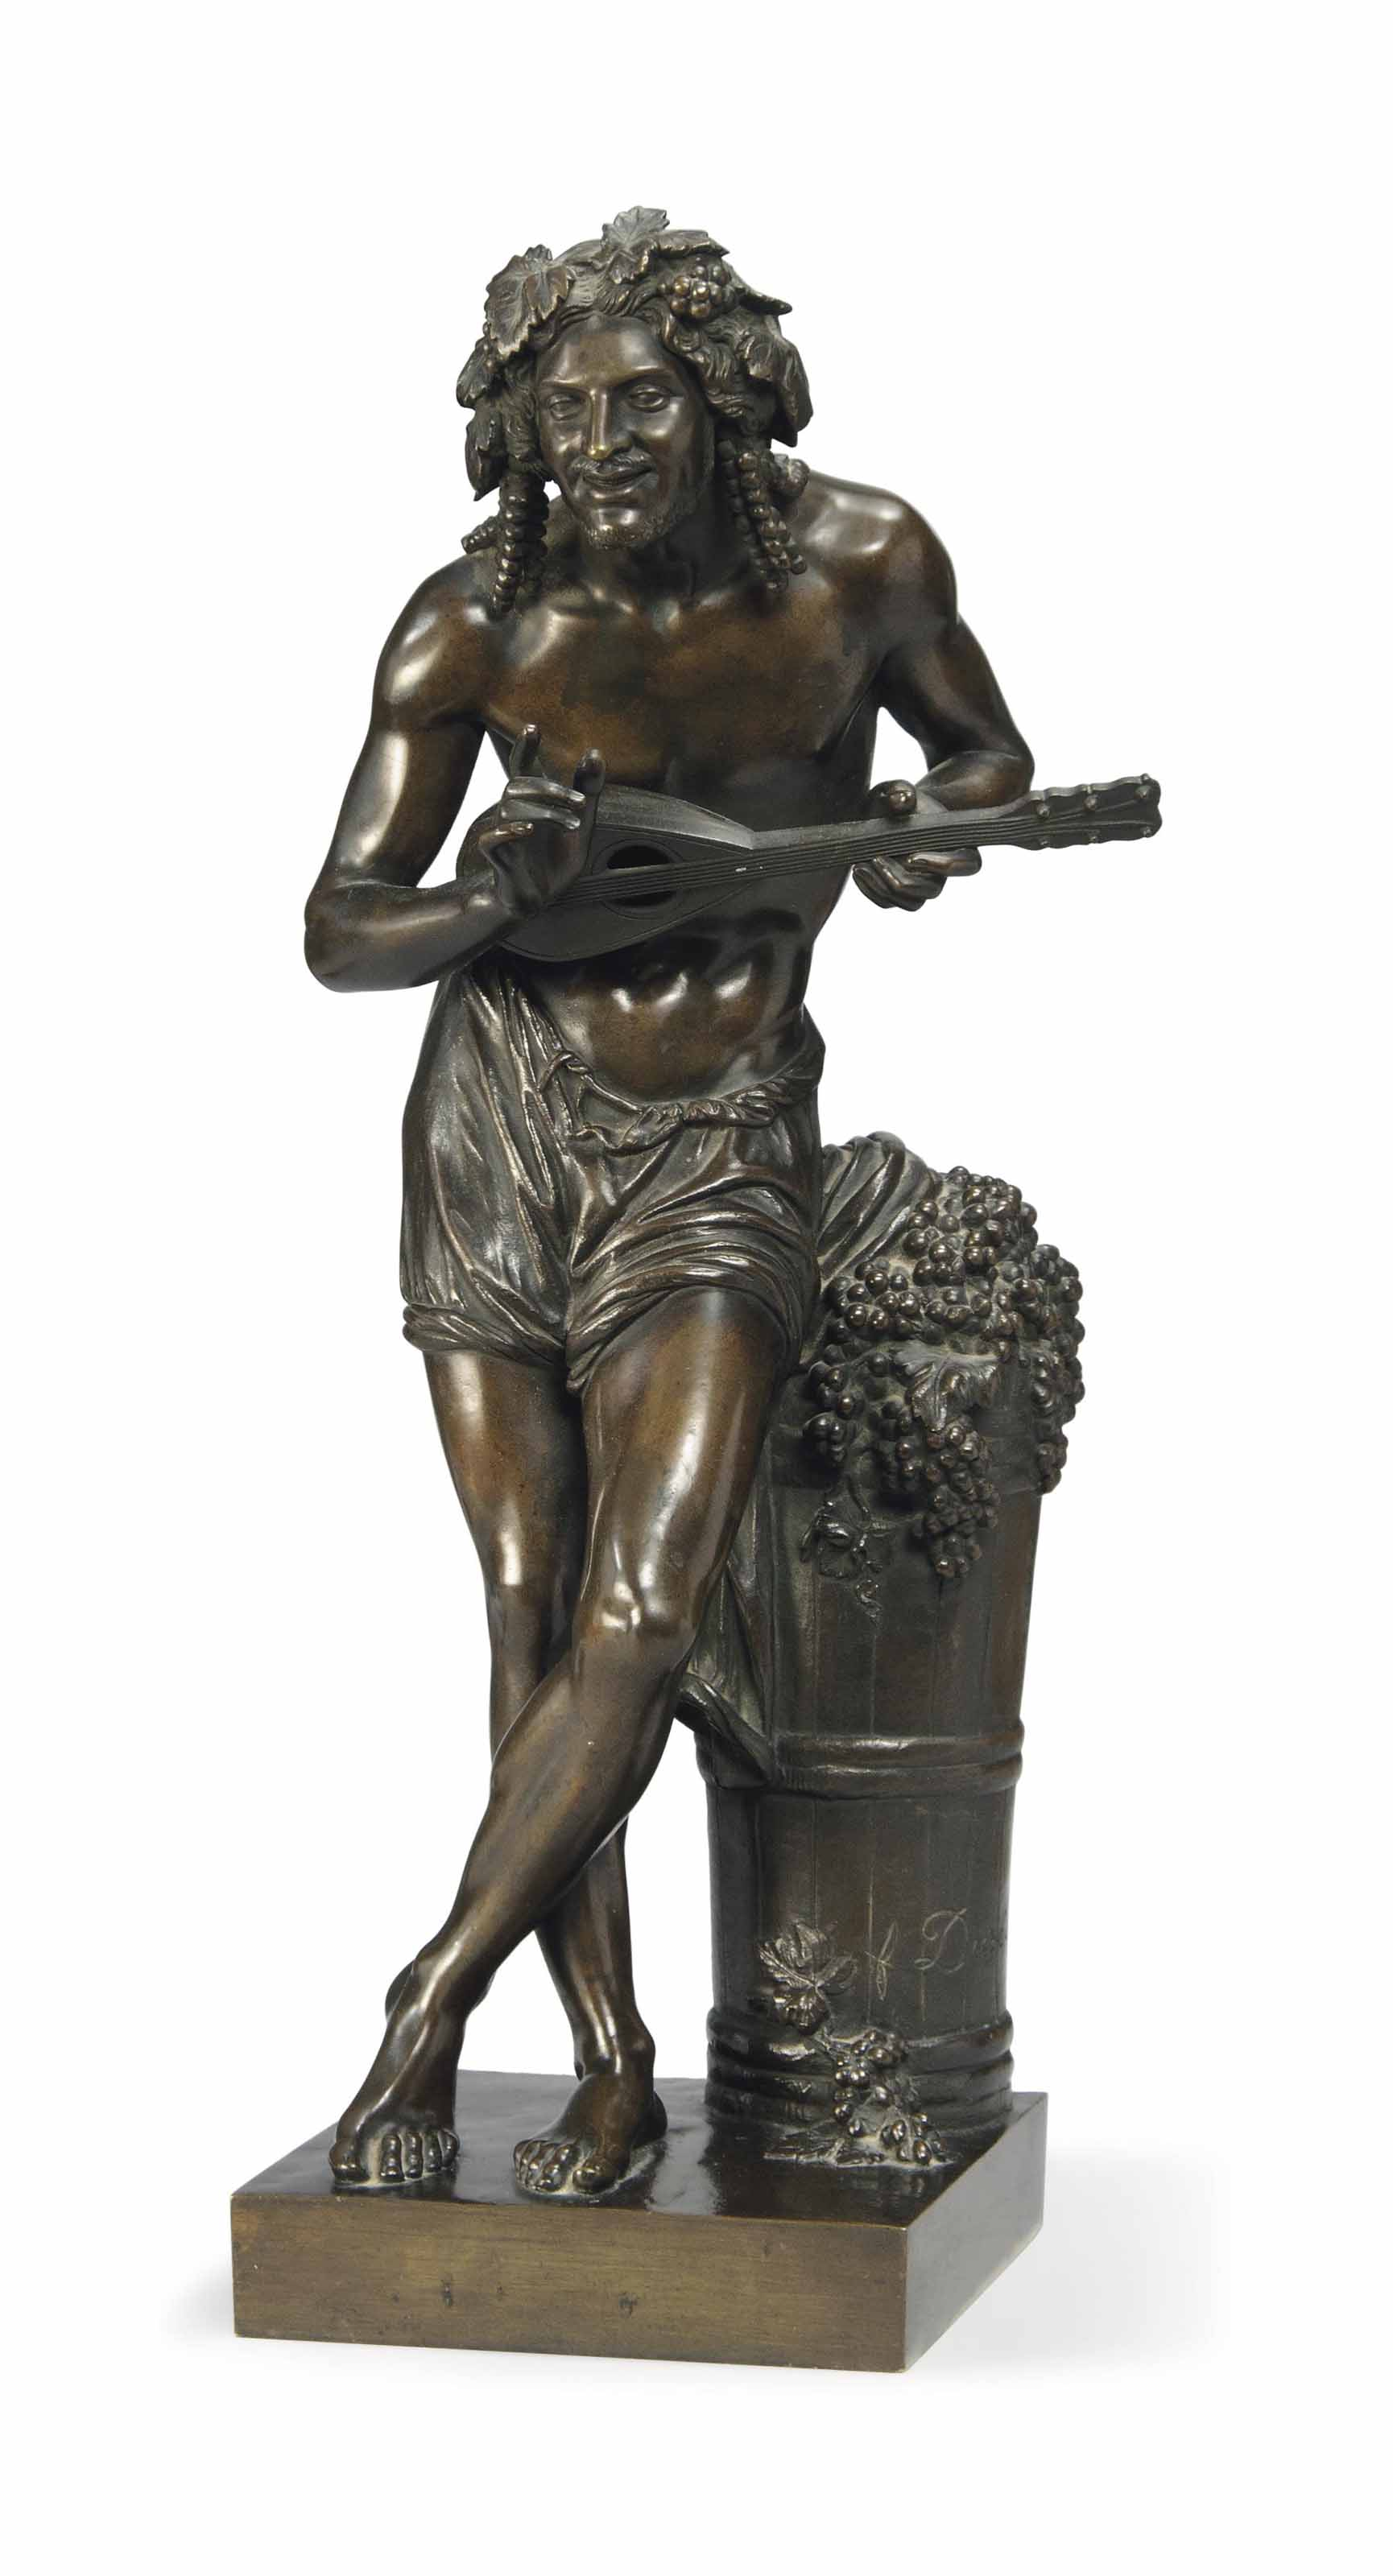 A FRENCH BRONZE FIGURE OF 'IMP